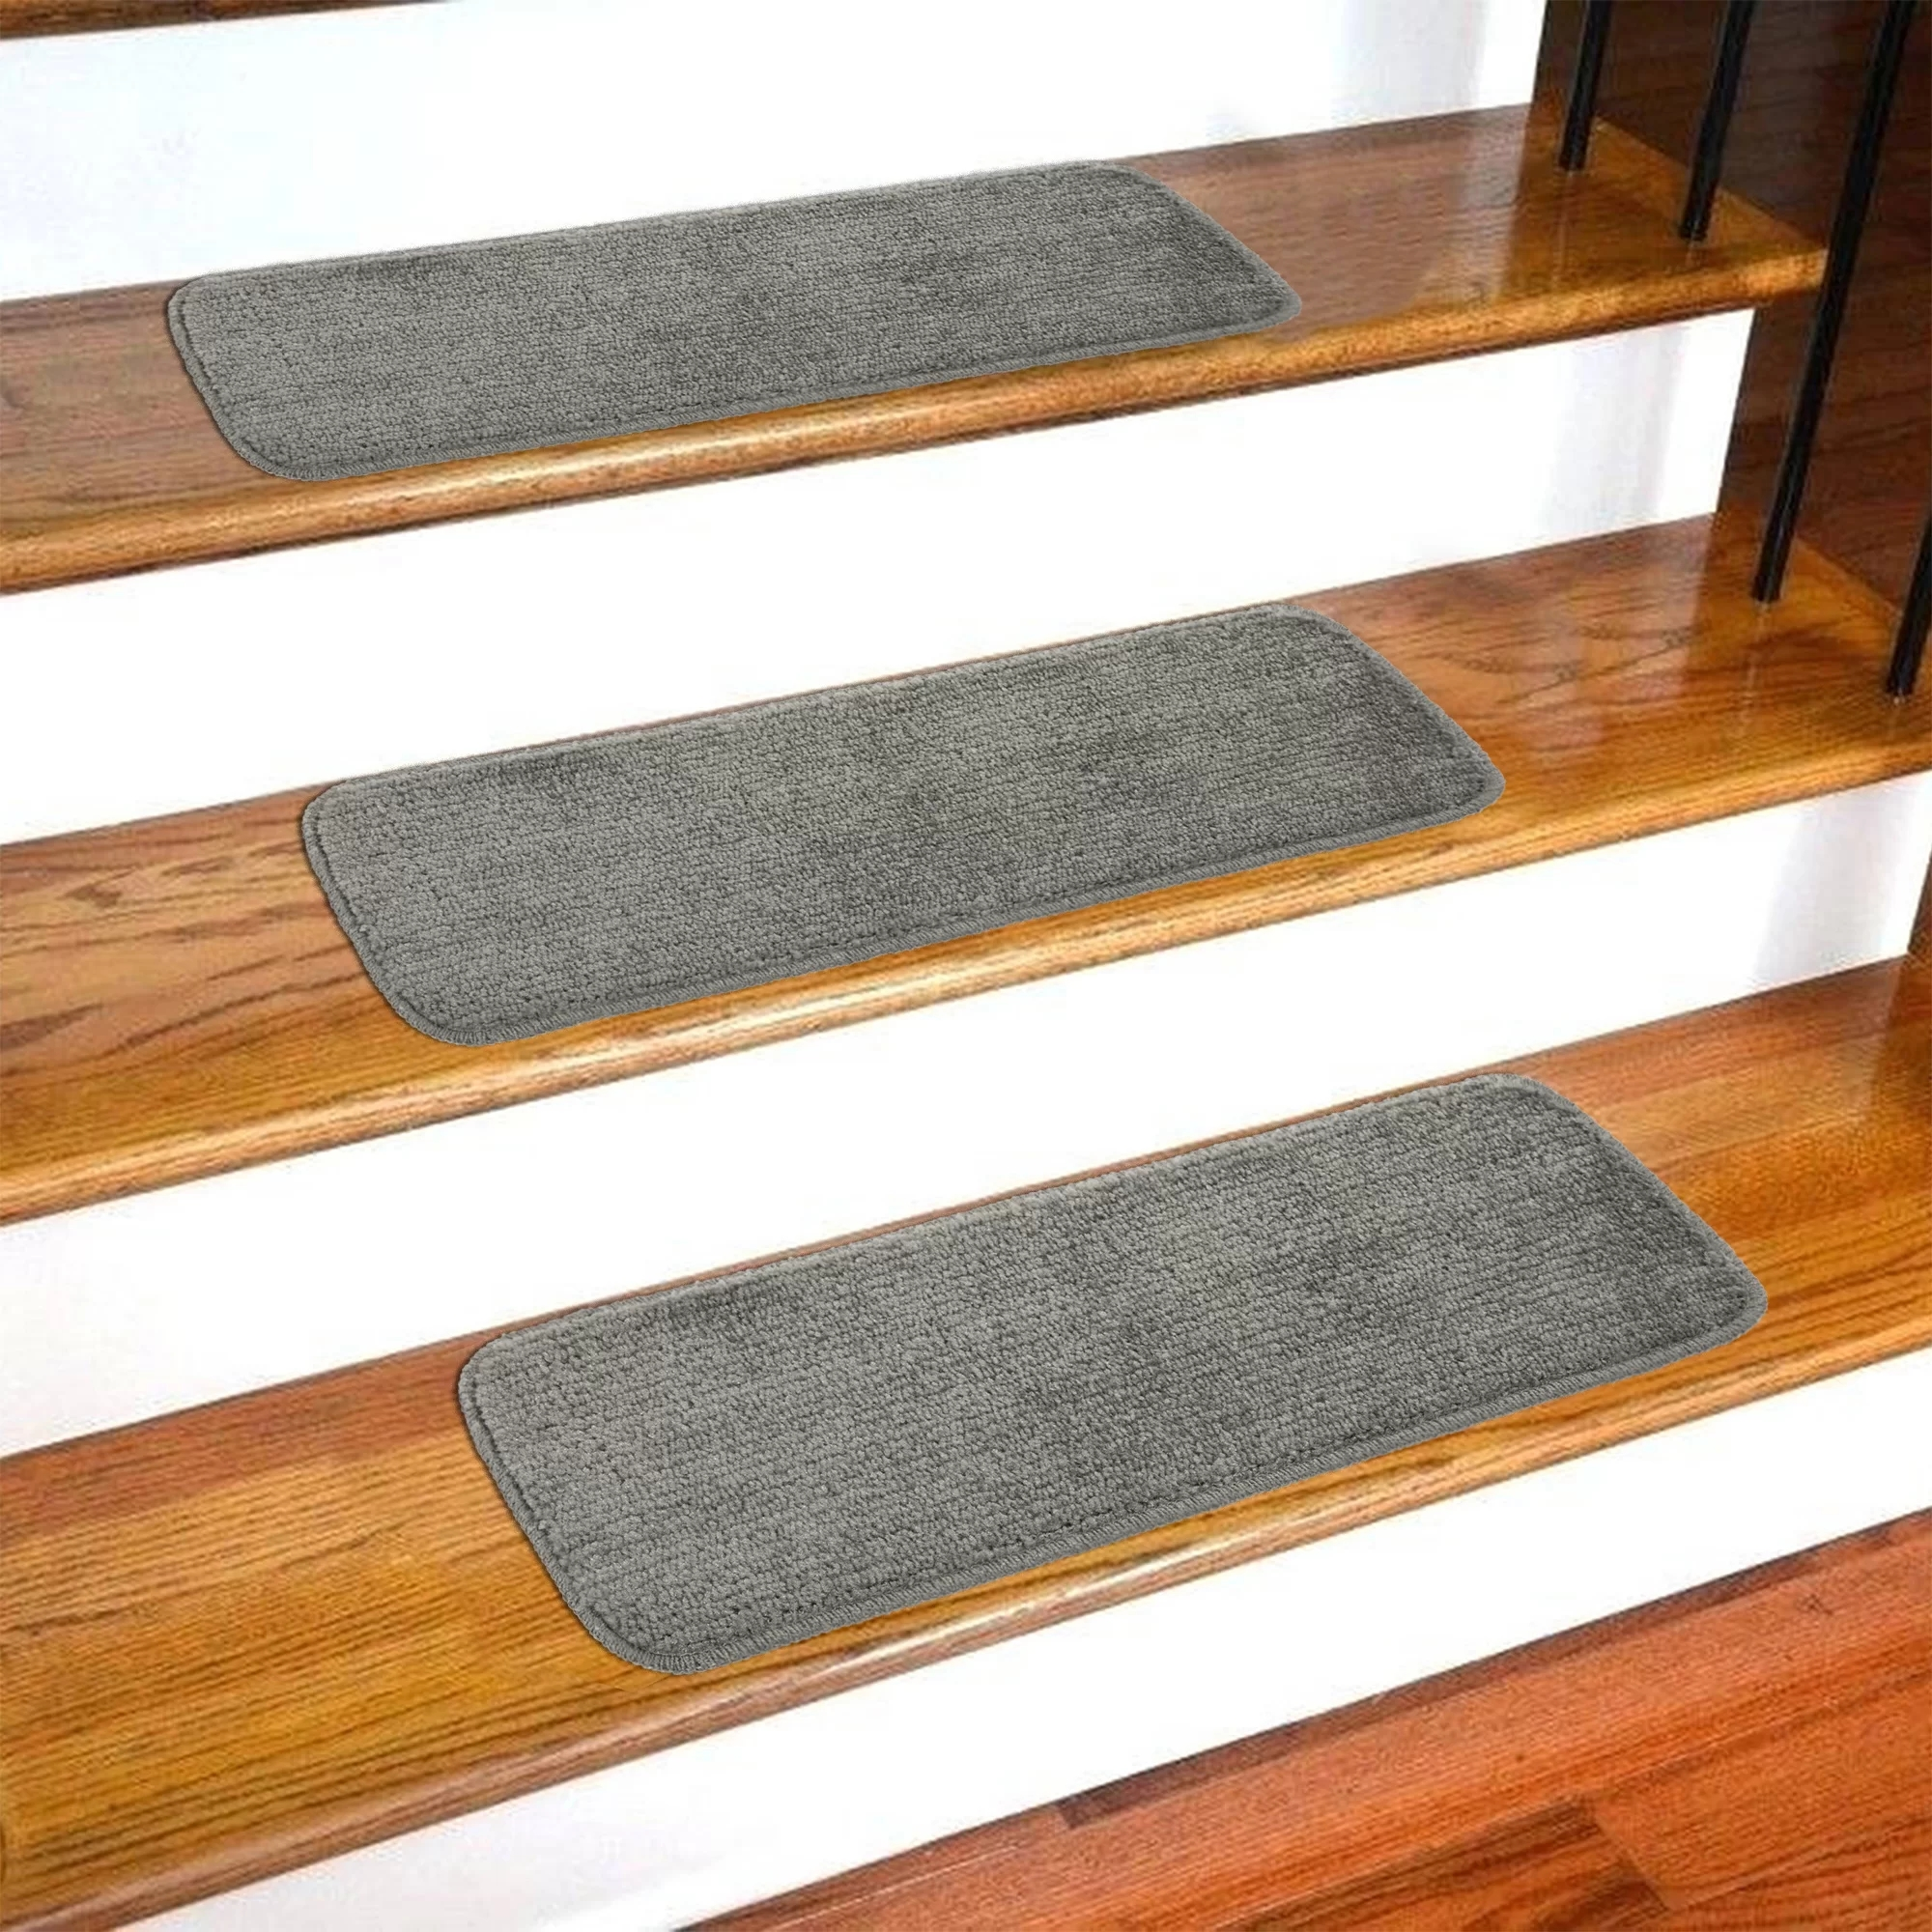 Stair Tread Rugs You Ll Love In 2020 Wayfair   Blue Carpet On Stairs   Wooden   Grey Stair White Wall   Antelope   Geometric   Gray